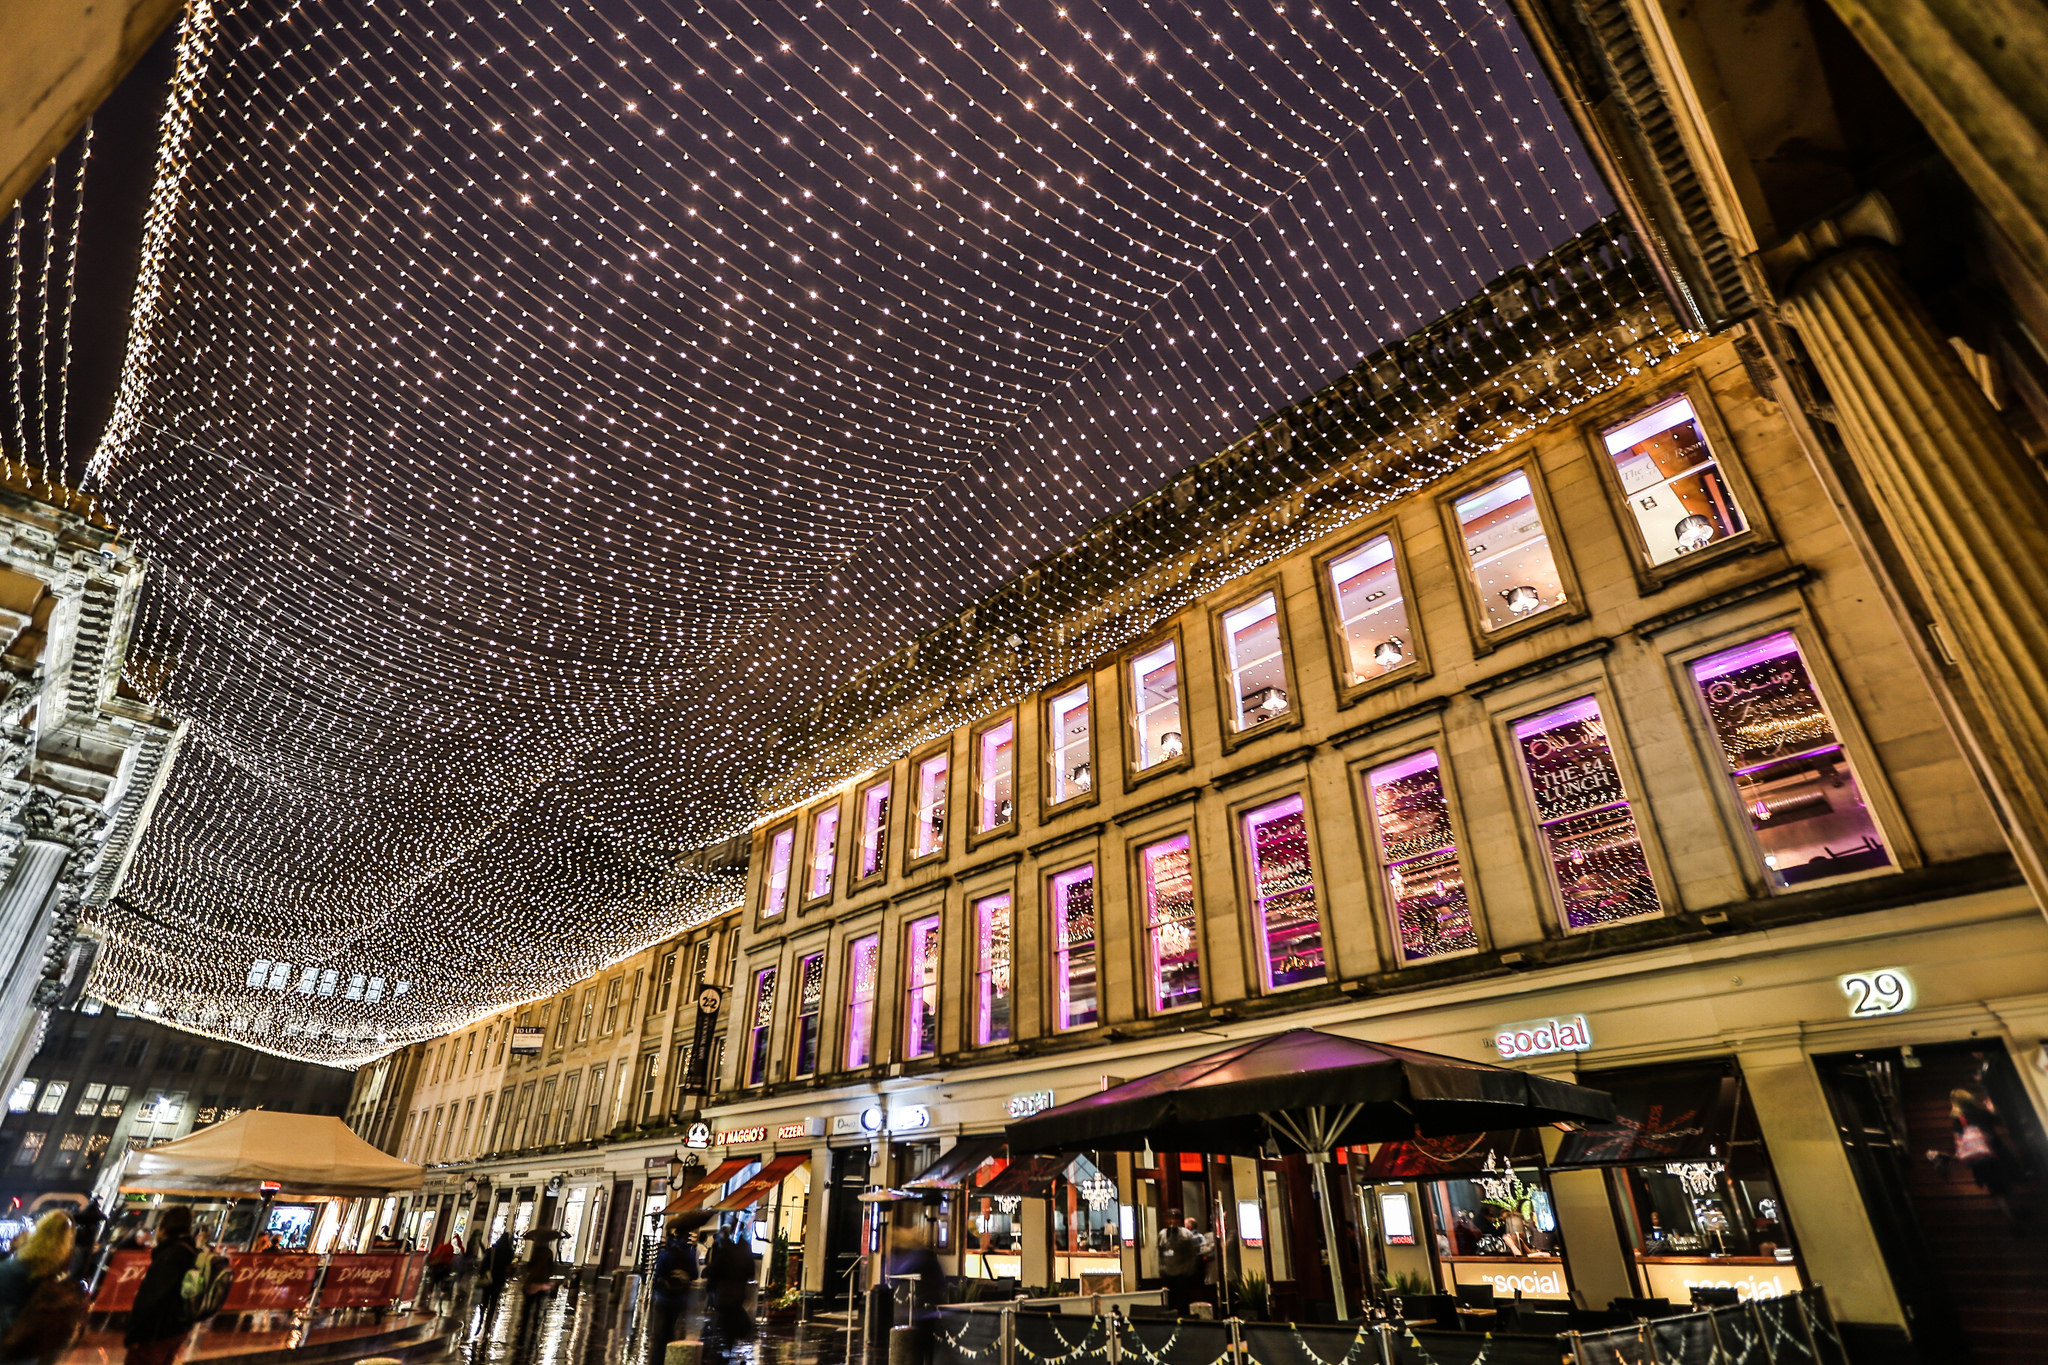 Royal Exchange Square, with sparkling skylights at night